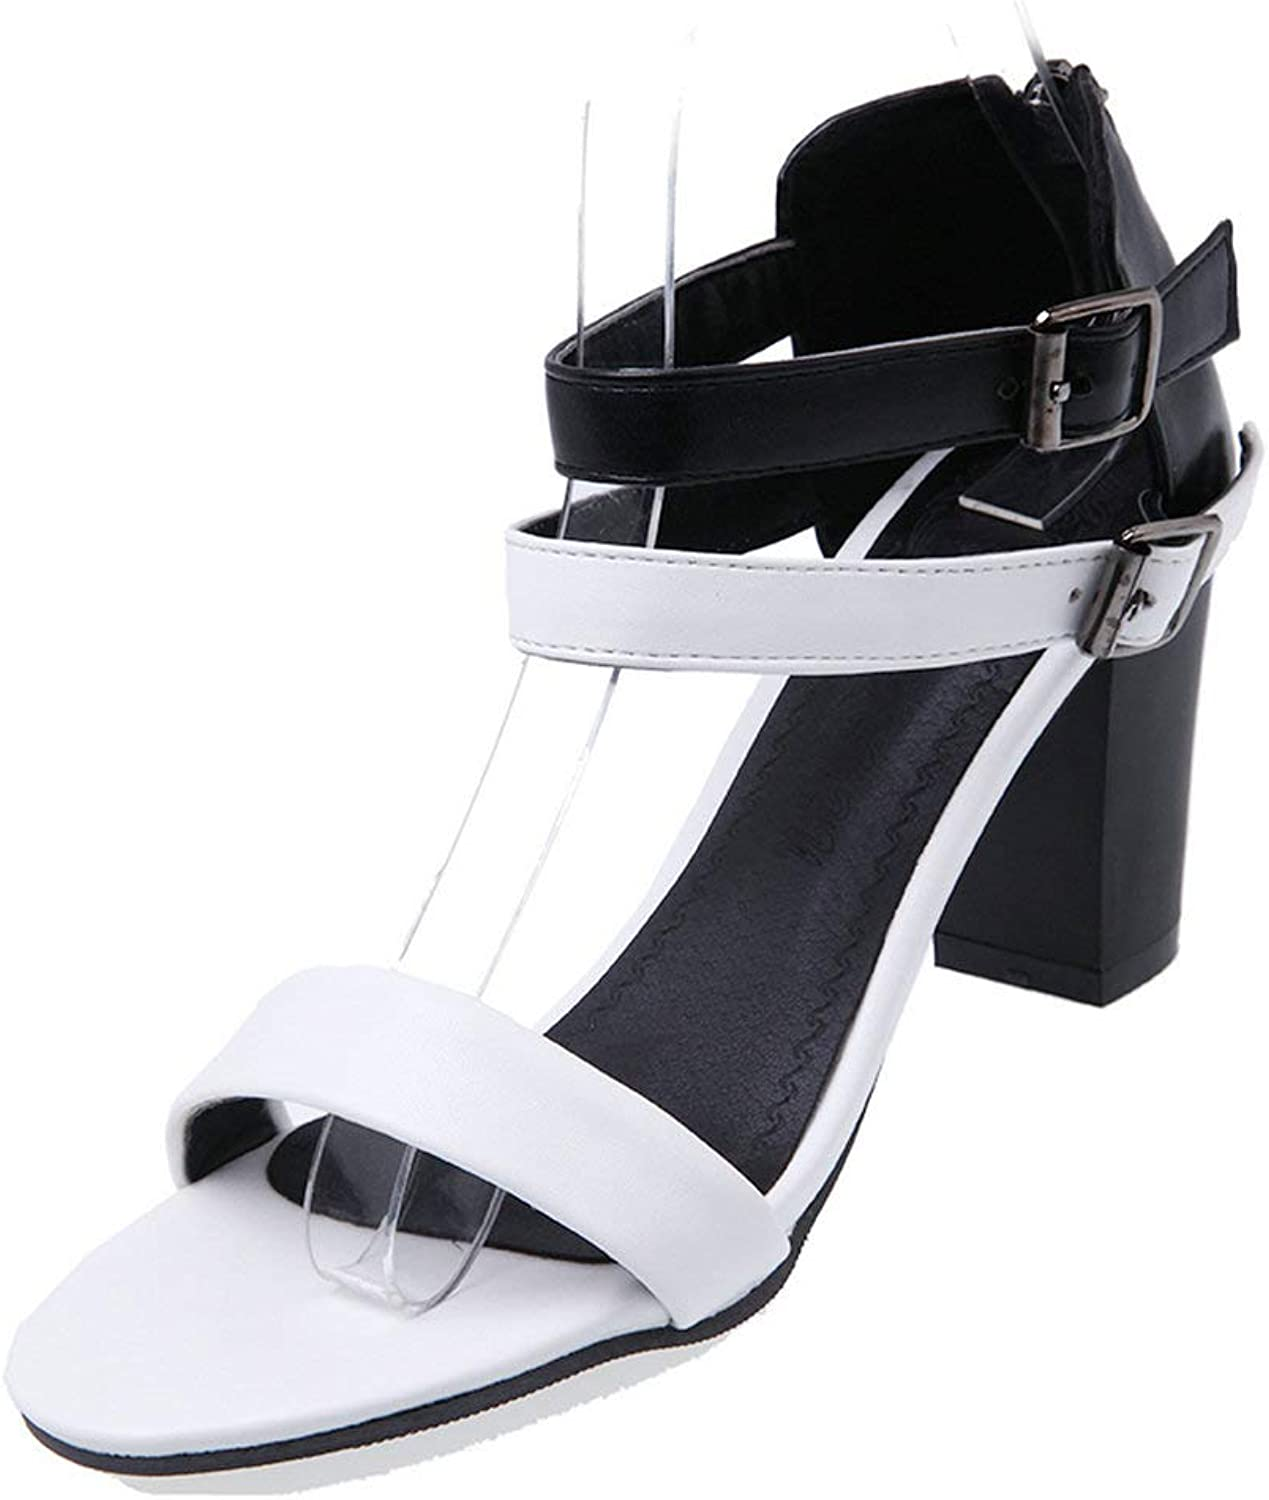 AnMengXinLing Ankle Strap Block Heel Sandals Women Open Toe Strappy Leather Double Buckle Dress Wedding Party Evening Office shoes Brown